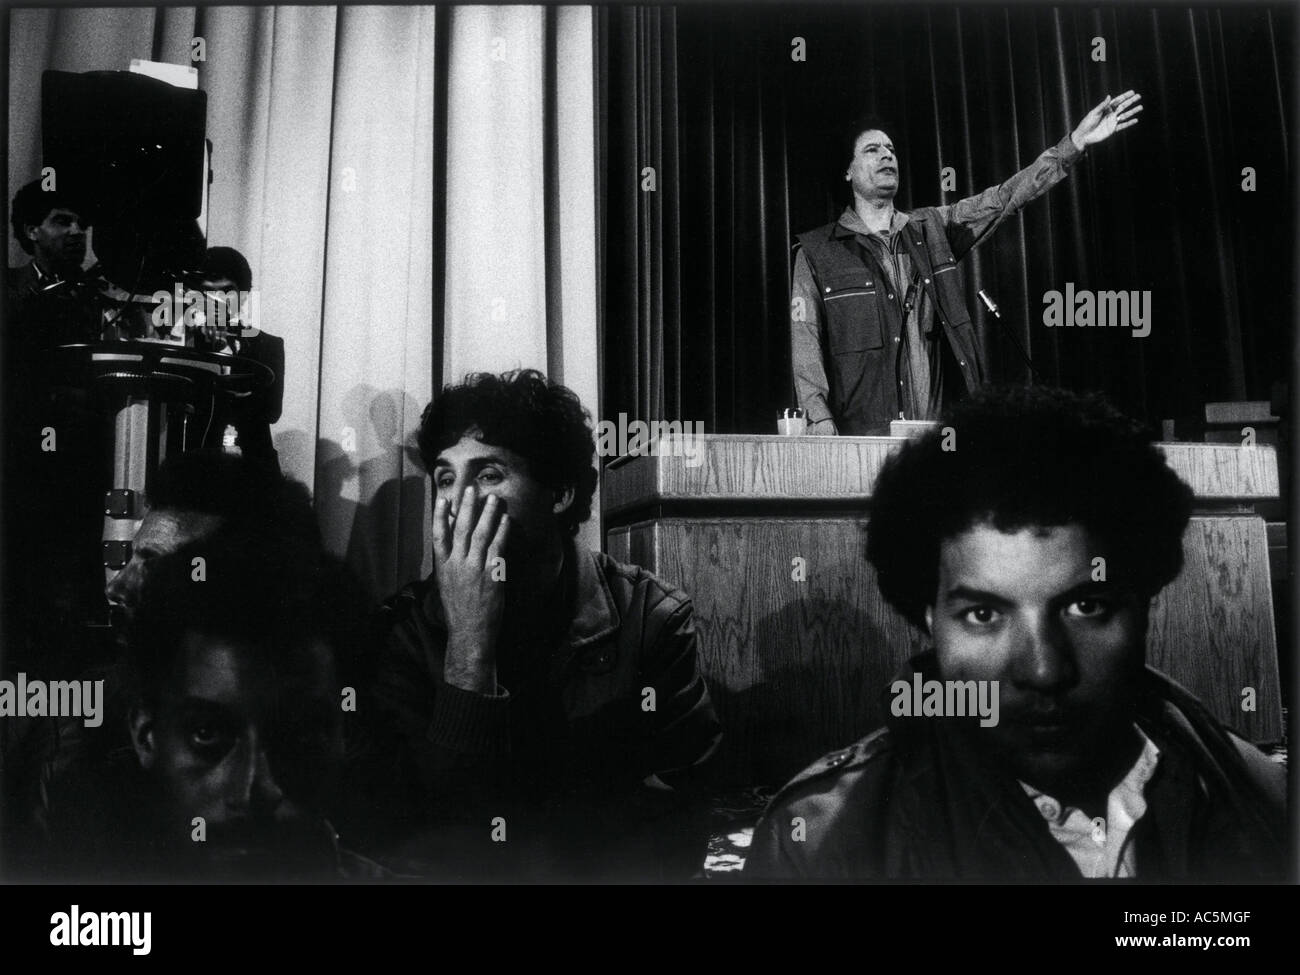 Muammar Gaddafi President of Libya at an indoor rally in Tripoli Security guards stand in front of him - Stock Image